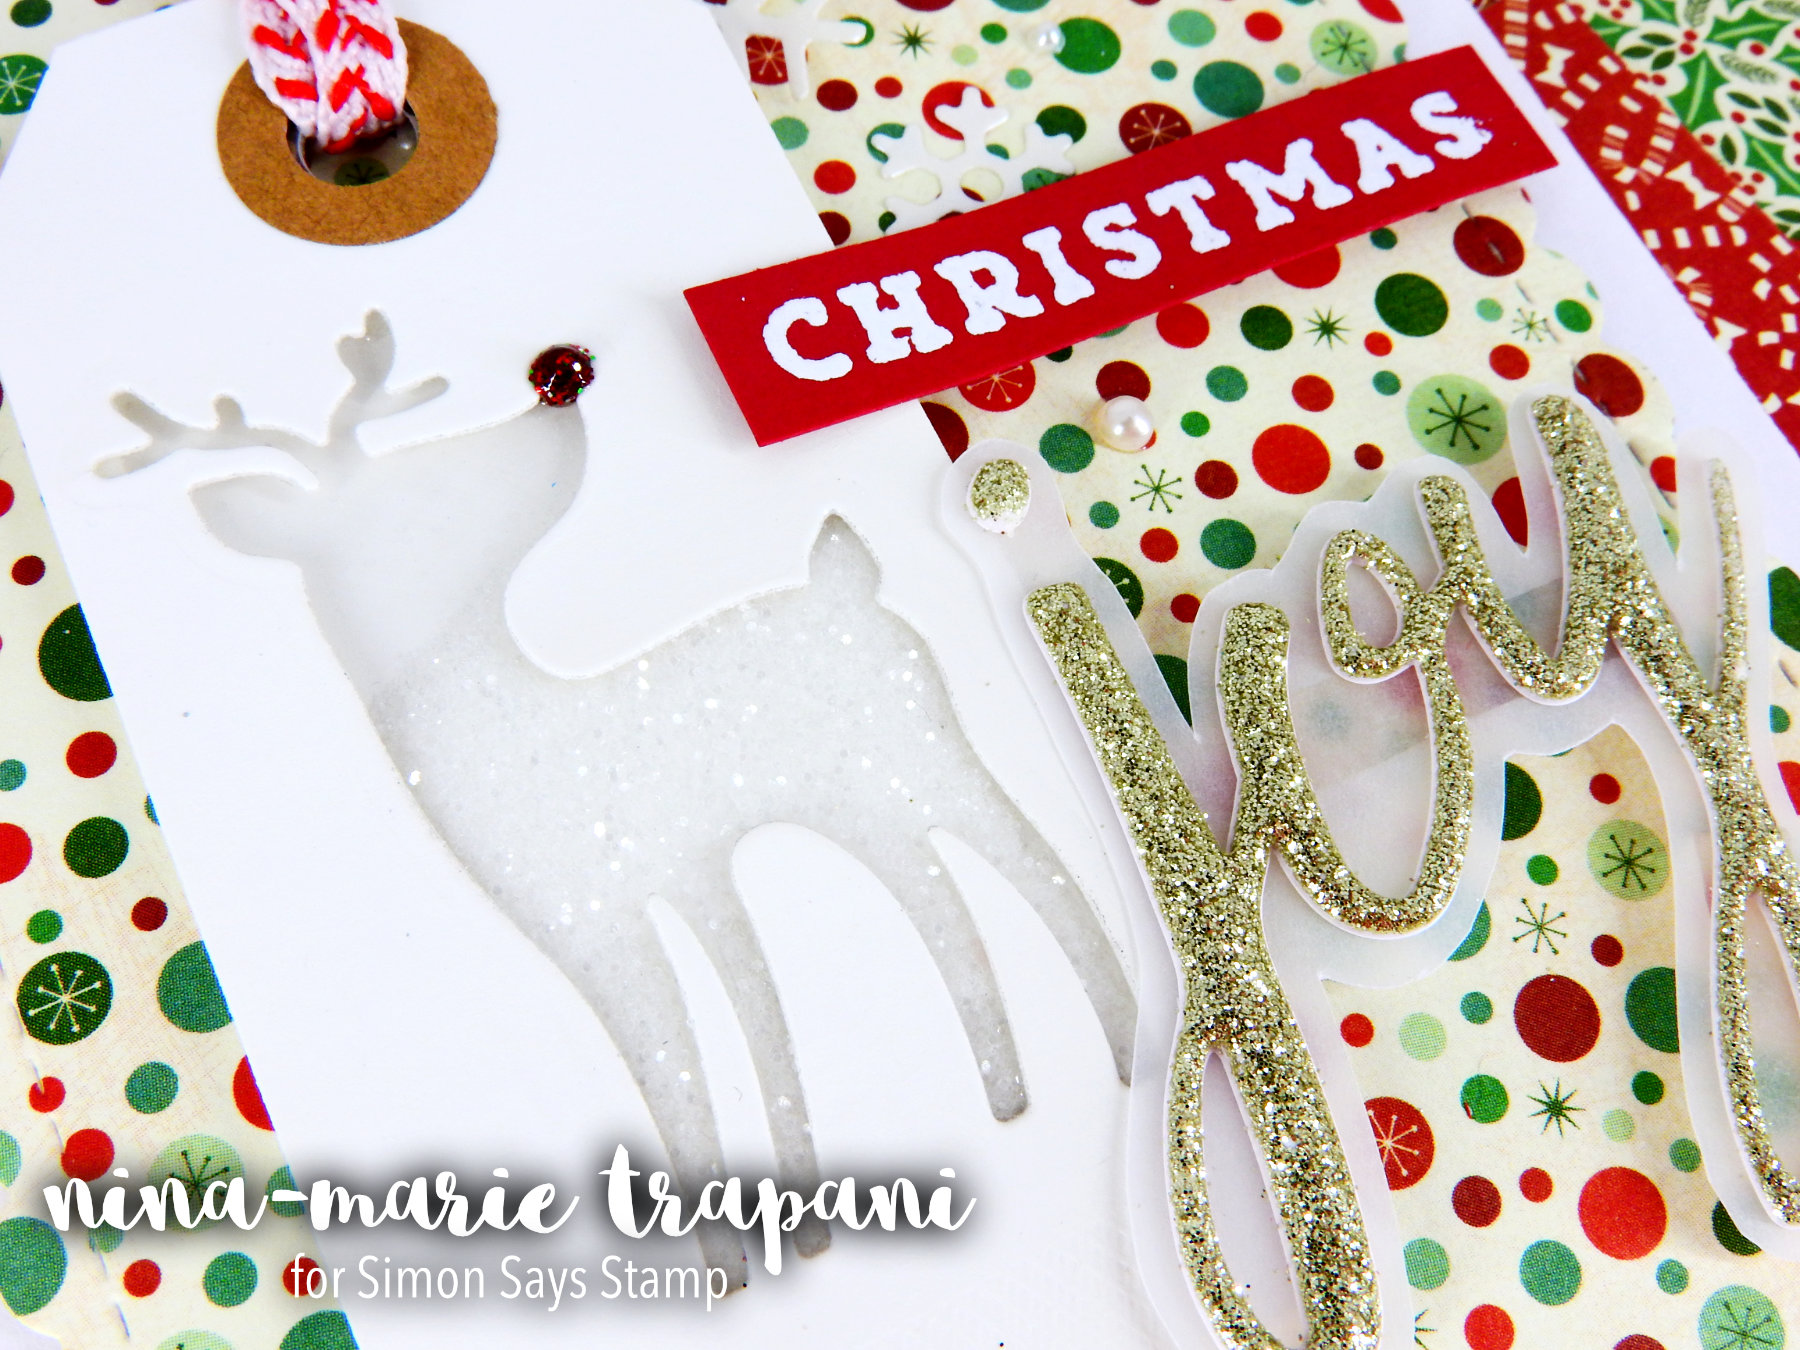 Glitter Die Cut Shaker + Simon's Holiday Card Kit Nina-Marie Design